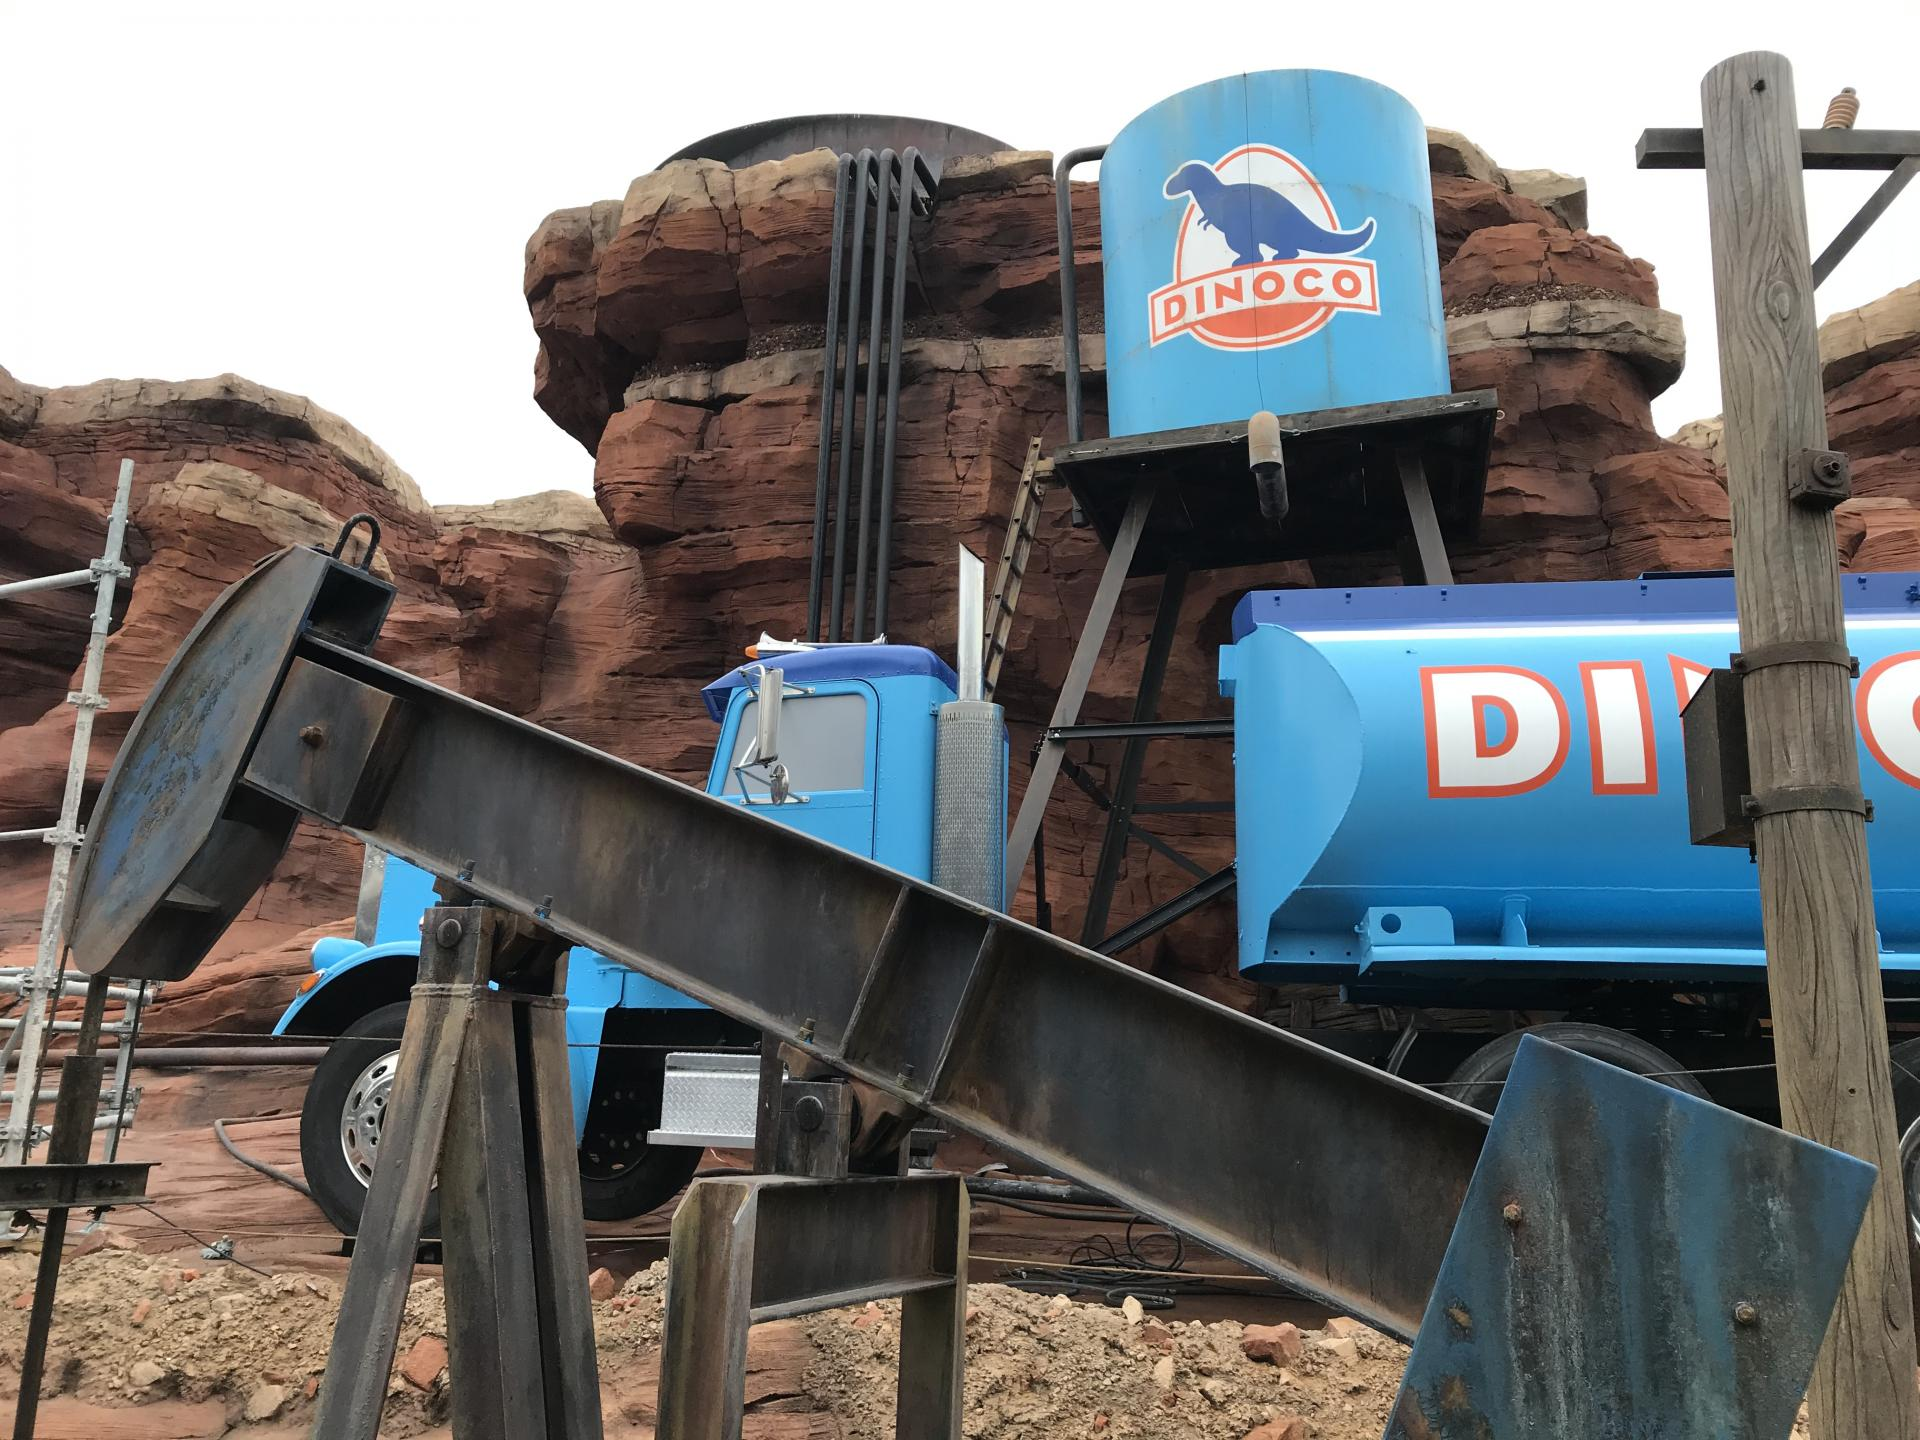 Cars route 66 road trip attraction dinoco truck Disney